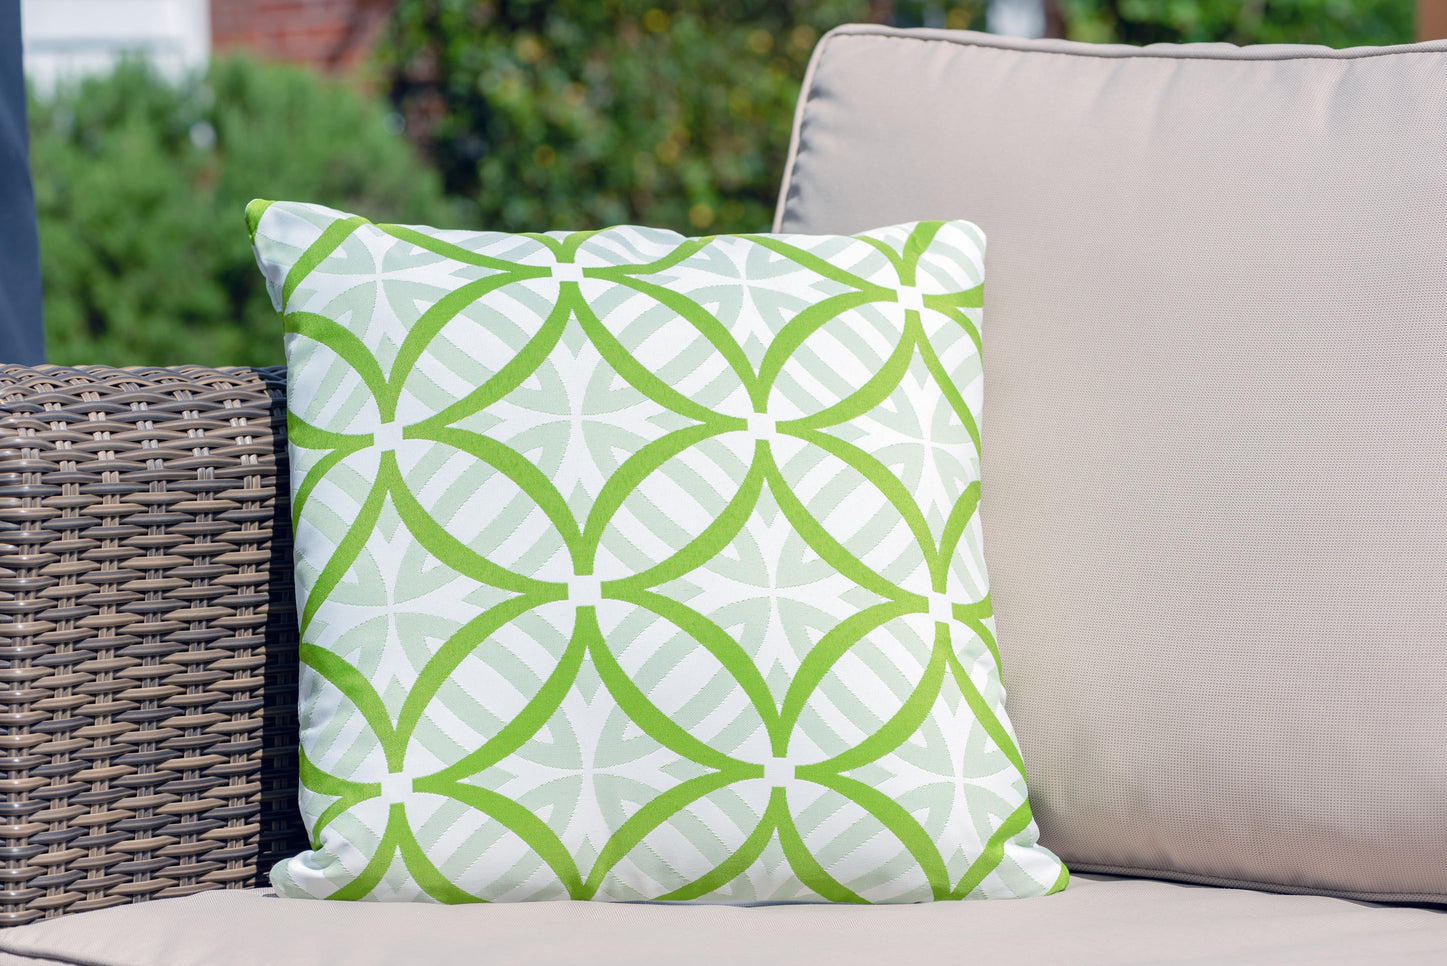 Luxury Cushion in Coolum Green